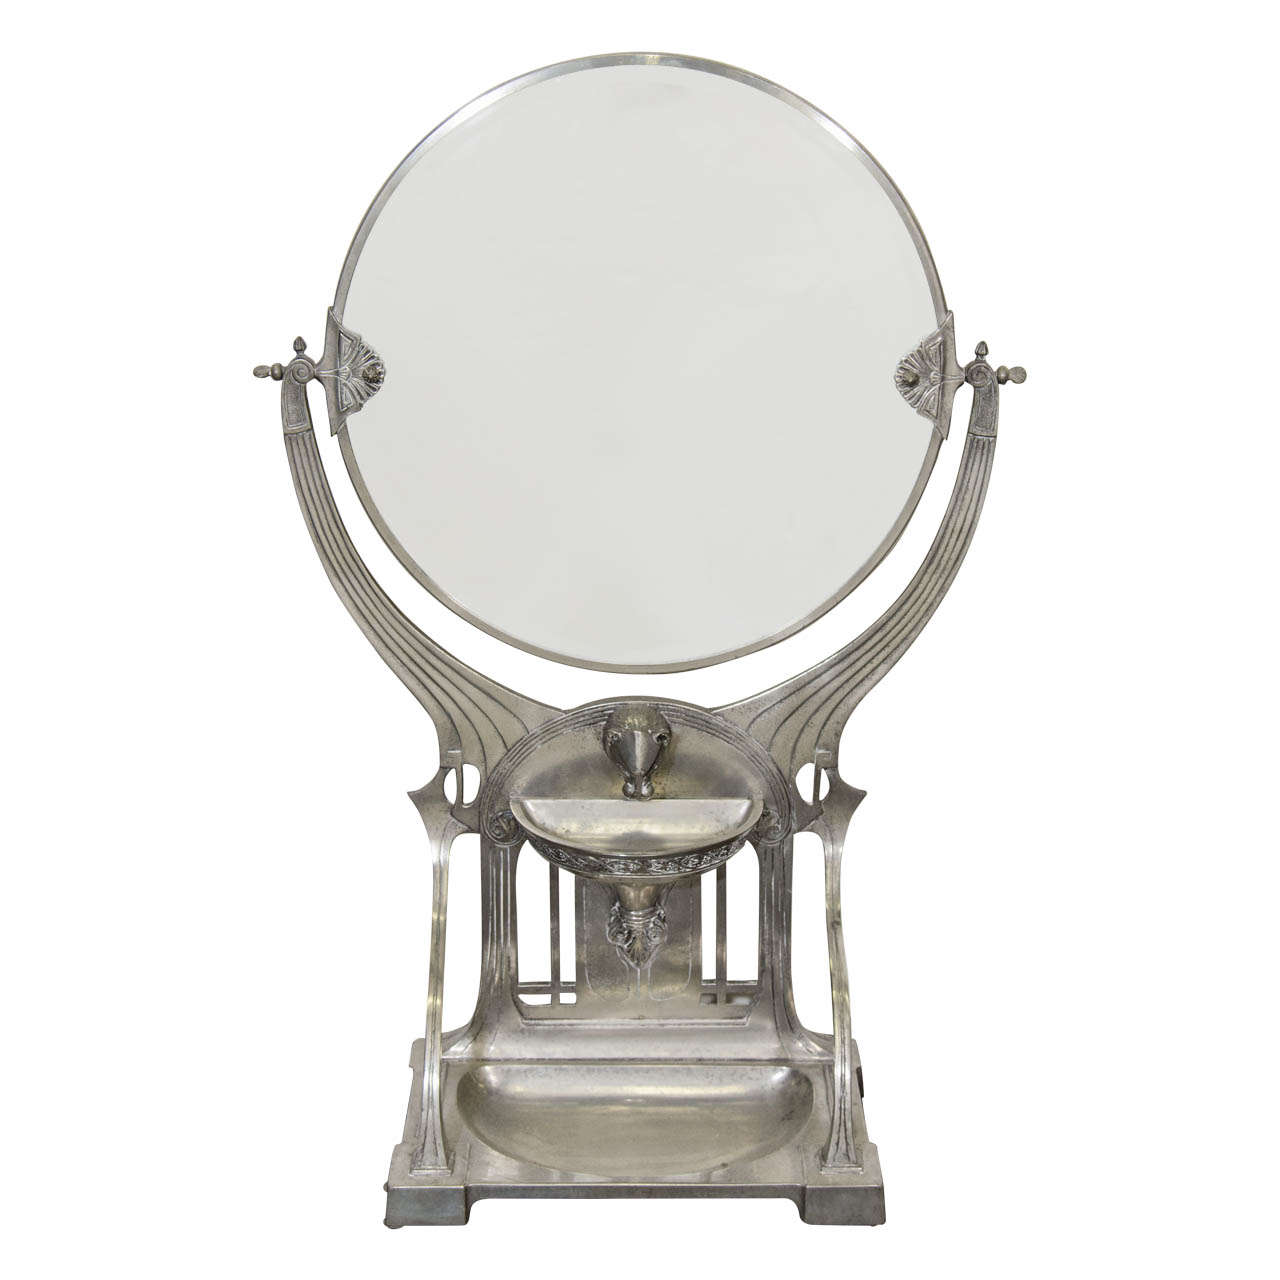 Art Nouveau Silver Fountain with Circular Mirror in WMF Style